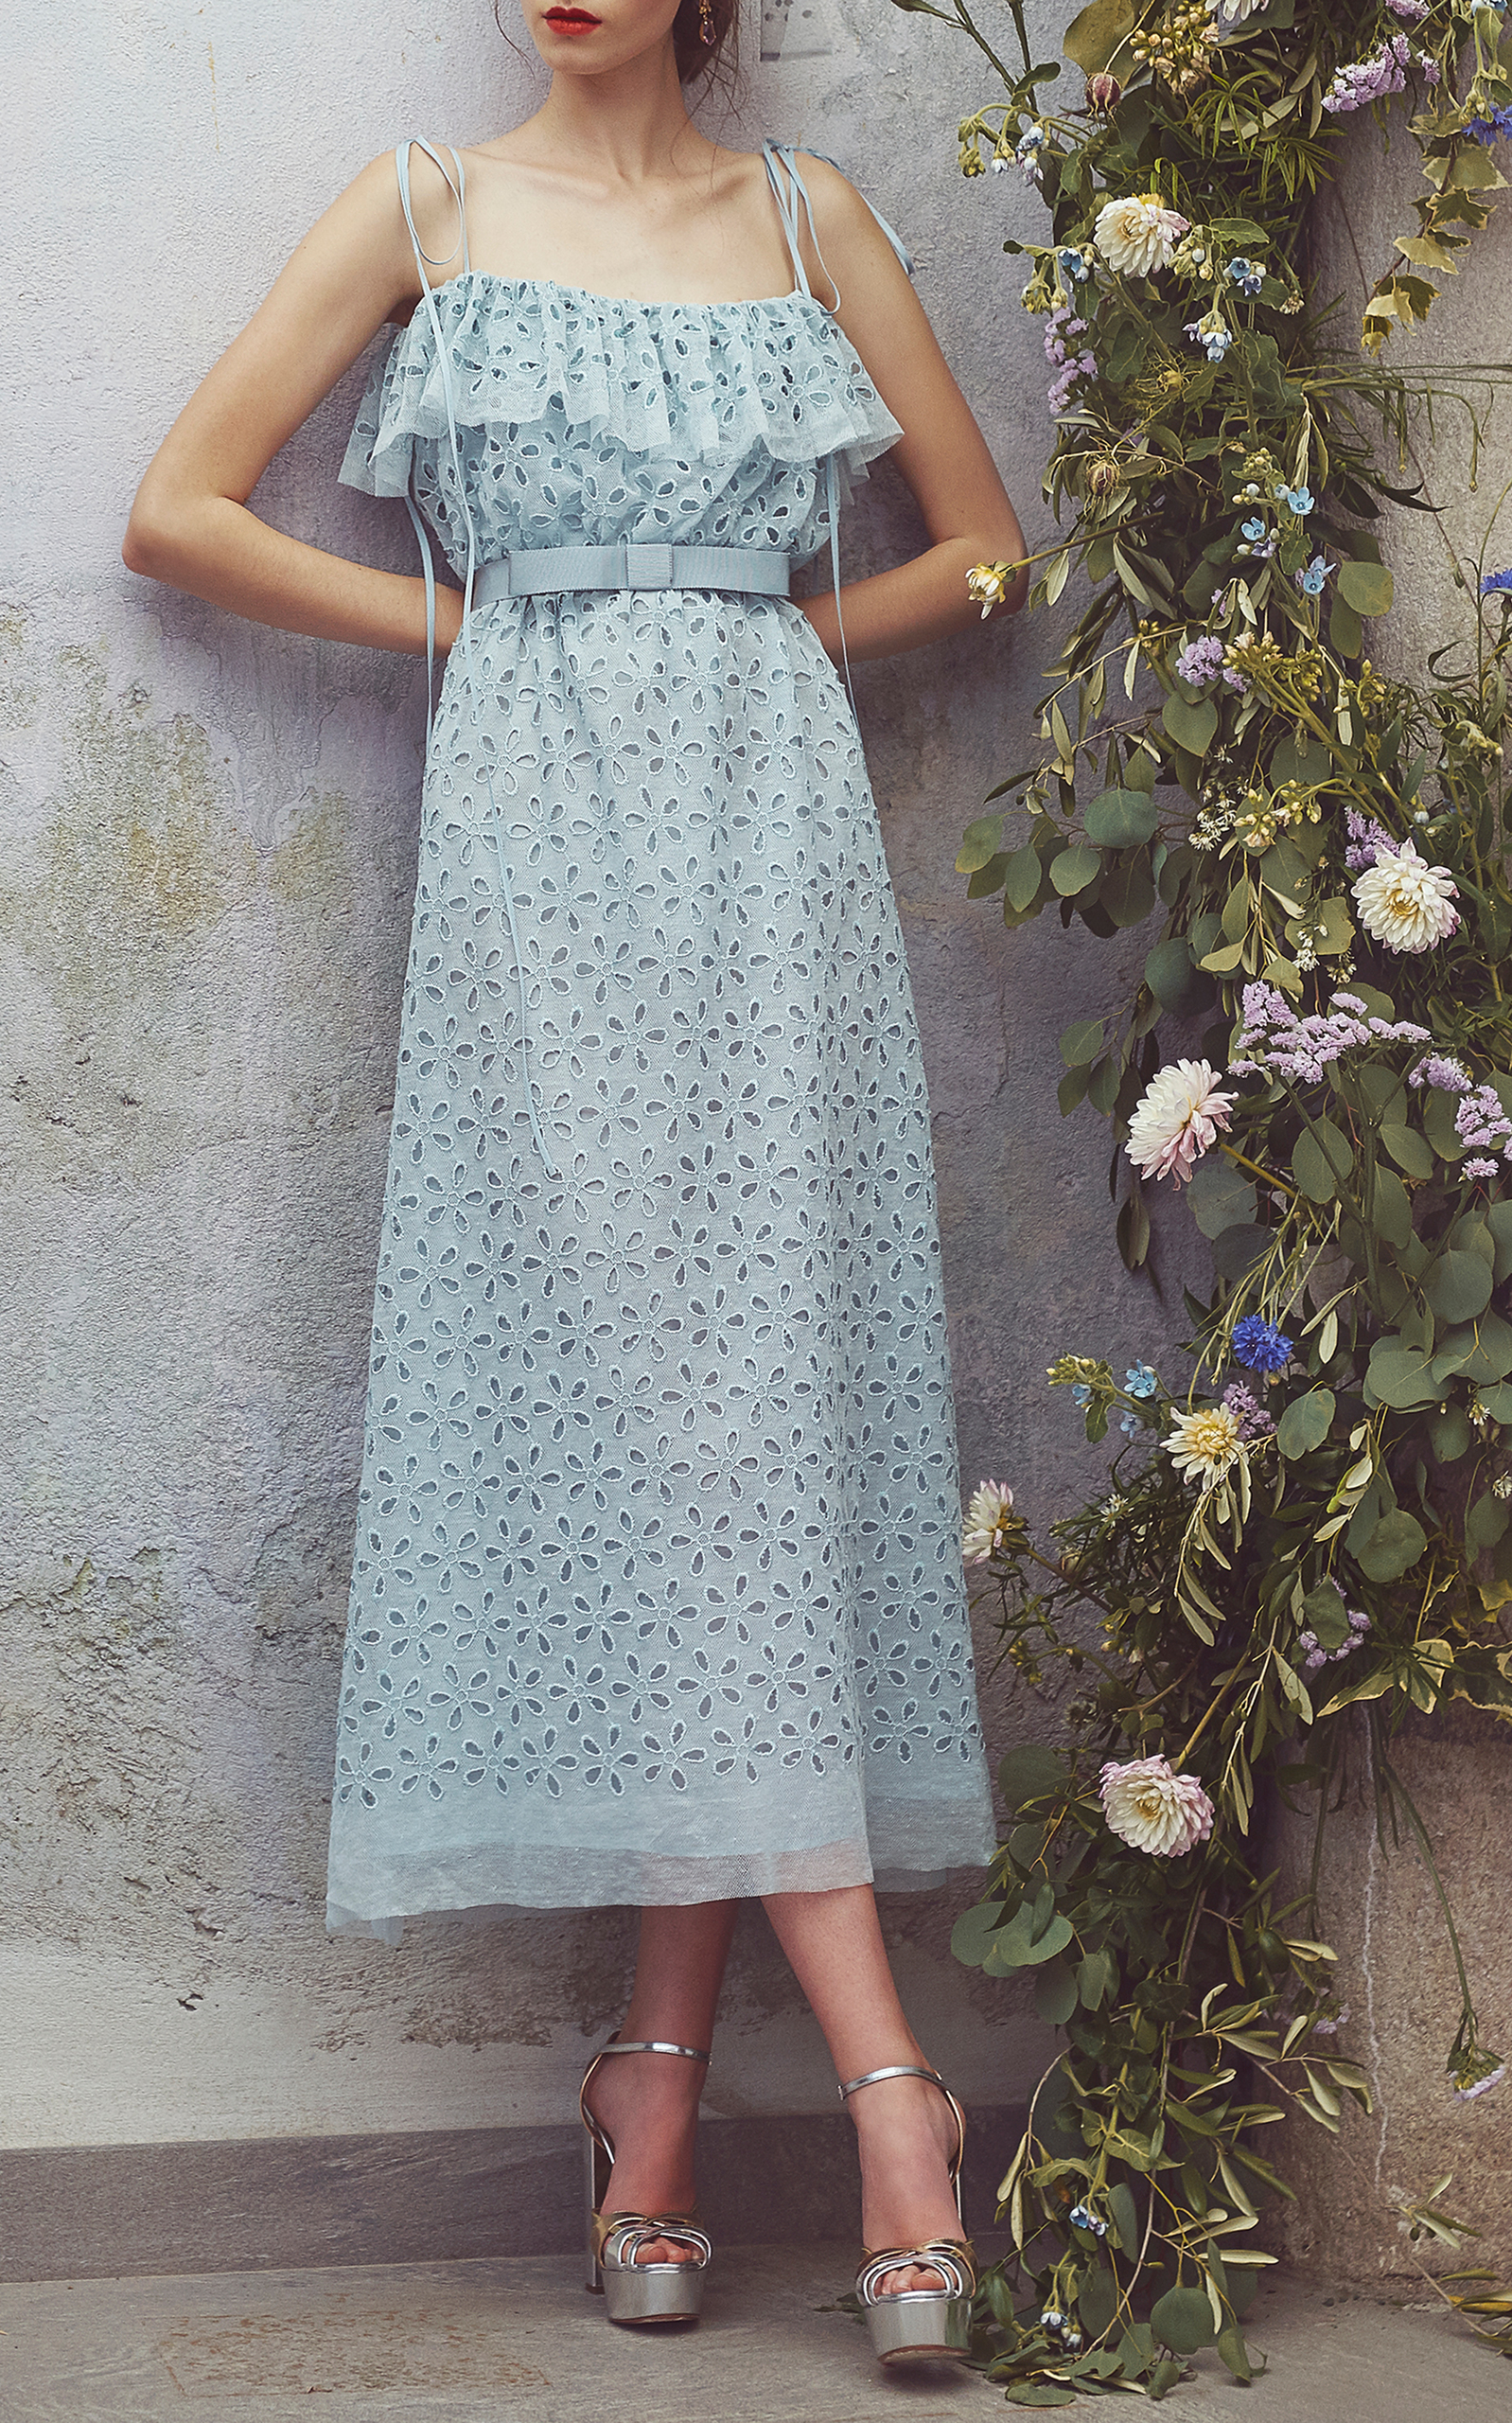 eb6f53089 Embroidered Eyelet Midi Dress by Luisa Beccaria | Moda Operandi